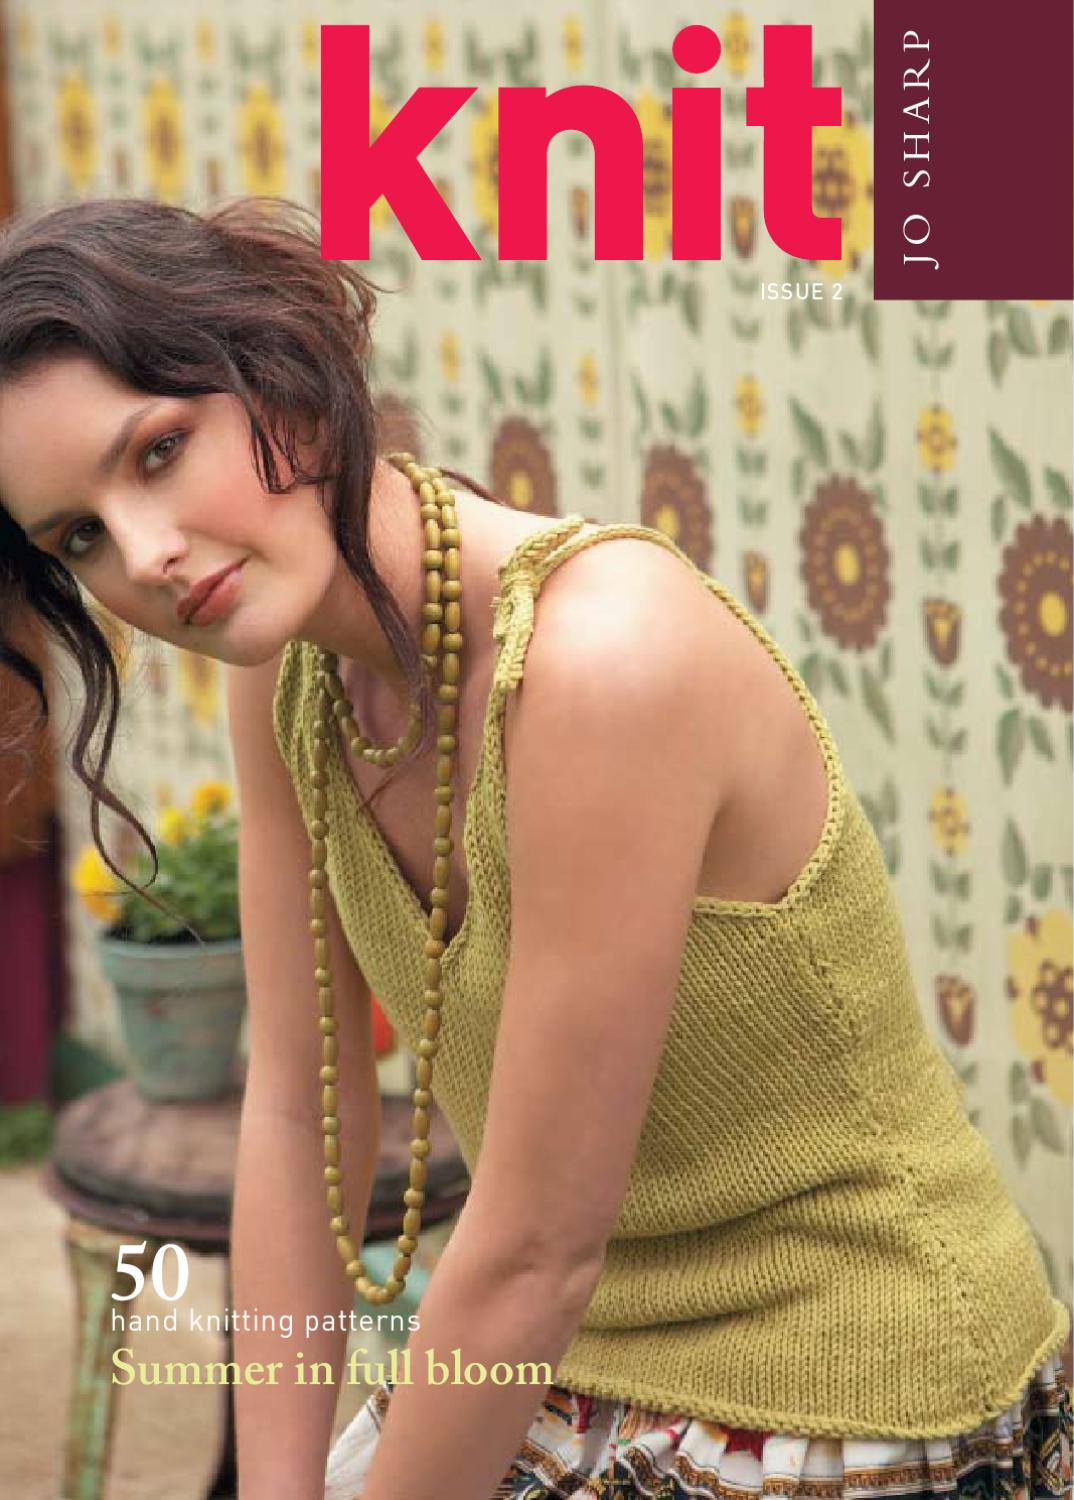 Knit Issue 2 by Knit issuu